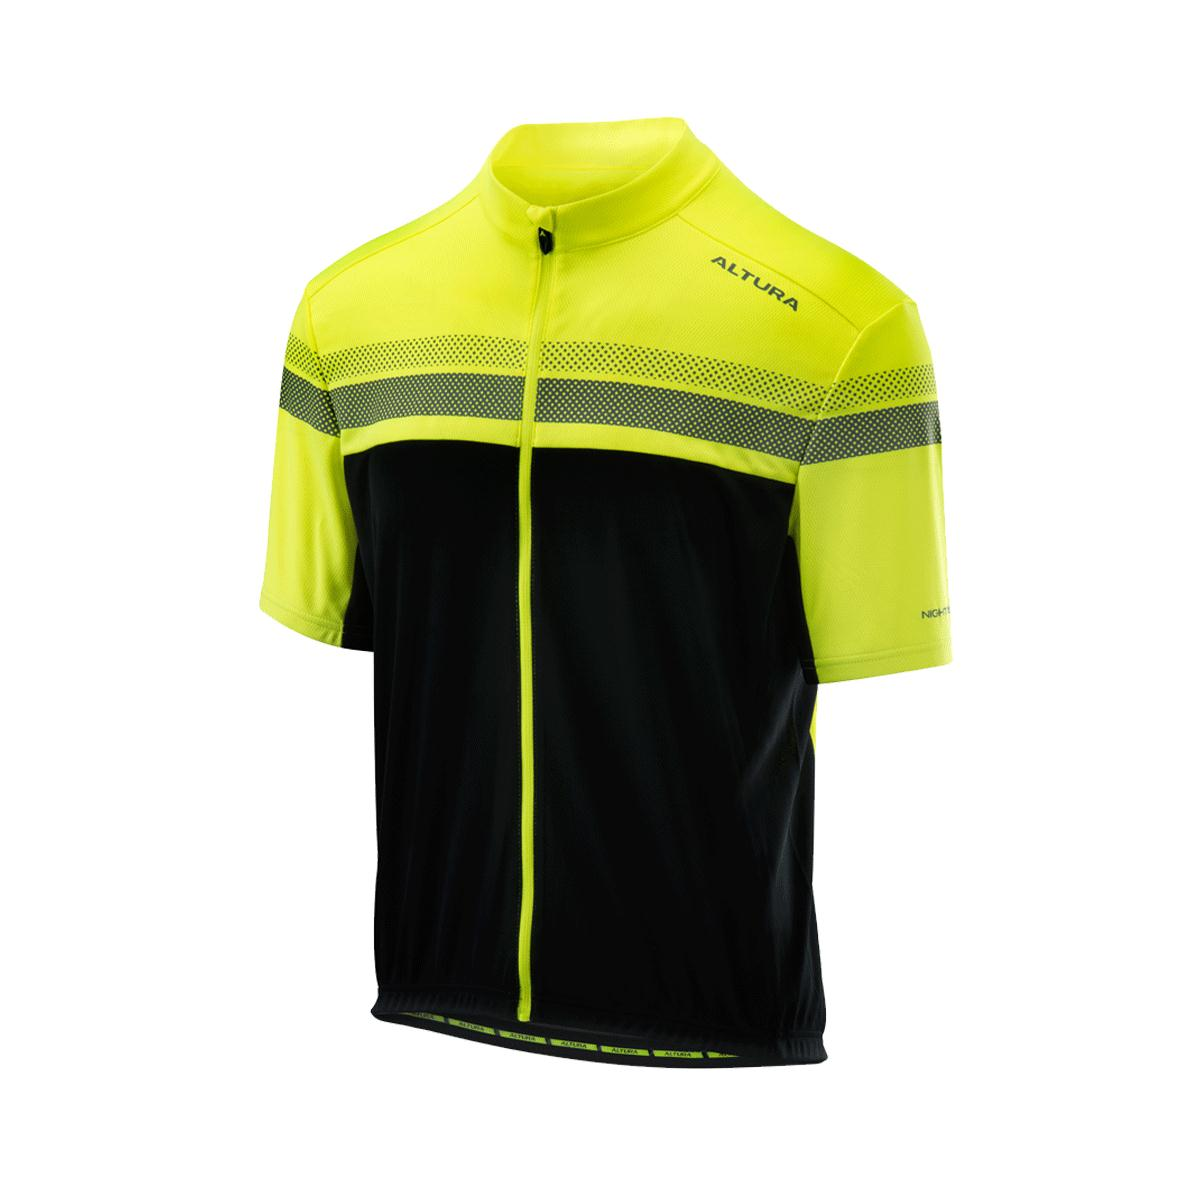 Altura Nightvision 4 Long Sleeve Mens Cycling Jersey Sporting Goods Men's Clothing Yellow 2019 New Fashion Style Online